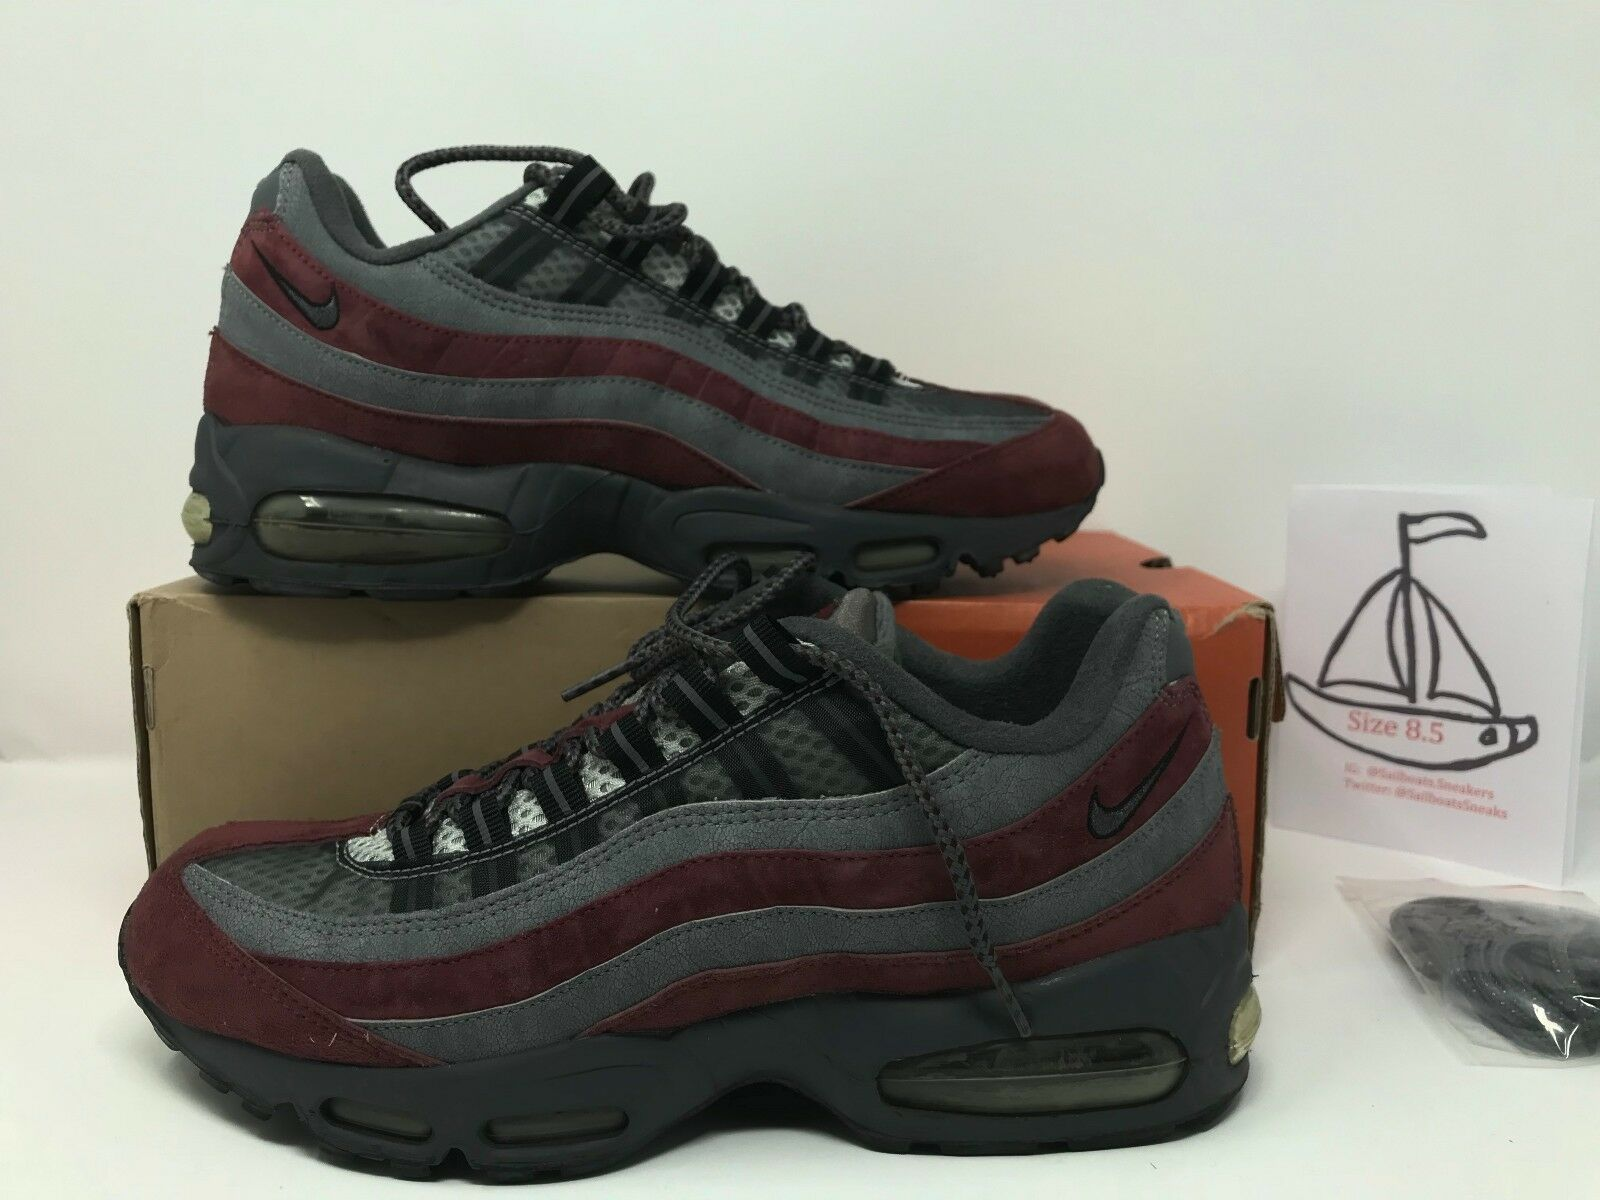 Air Max 95 Premium. Sz 8.5. OG All. 7 10 Condition (Style Code 309785061)